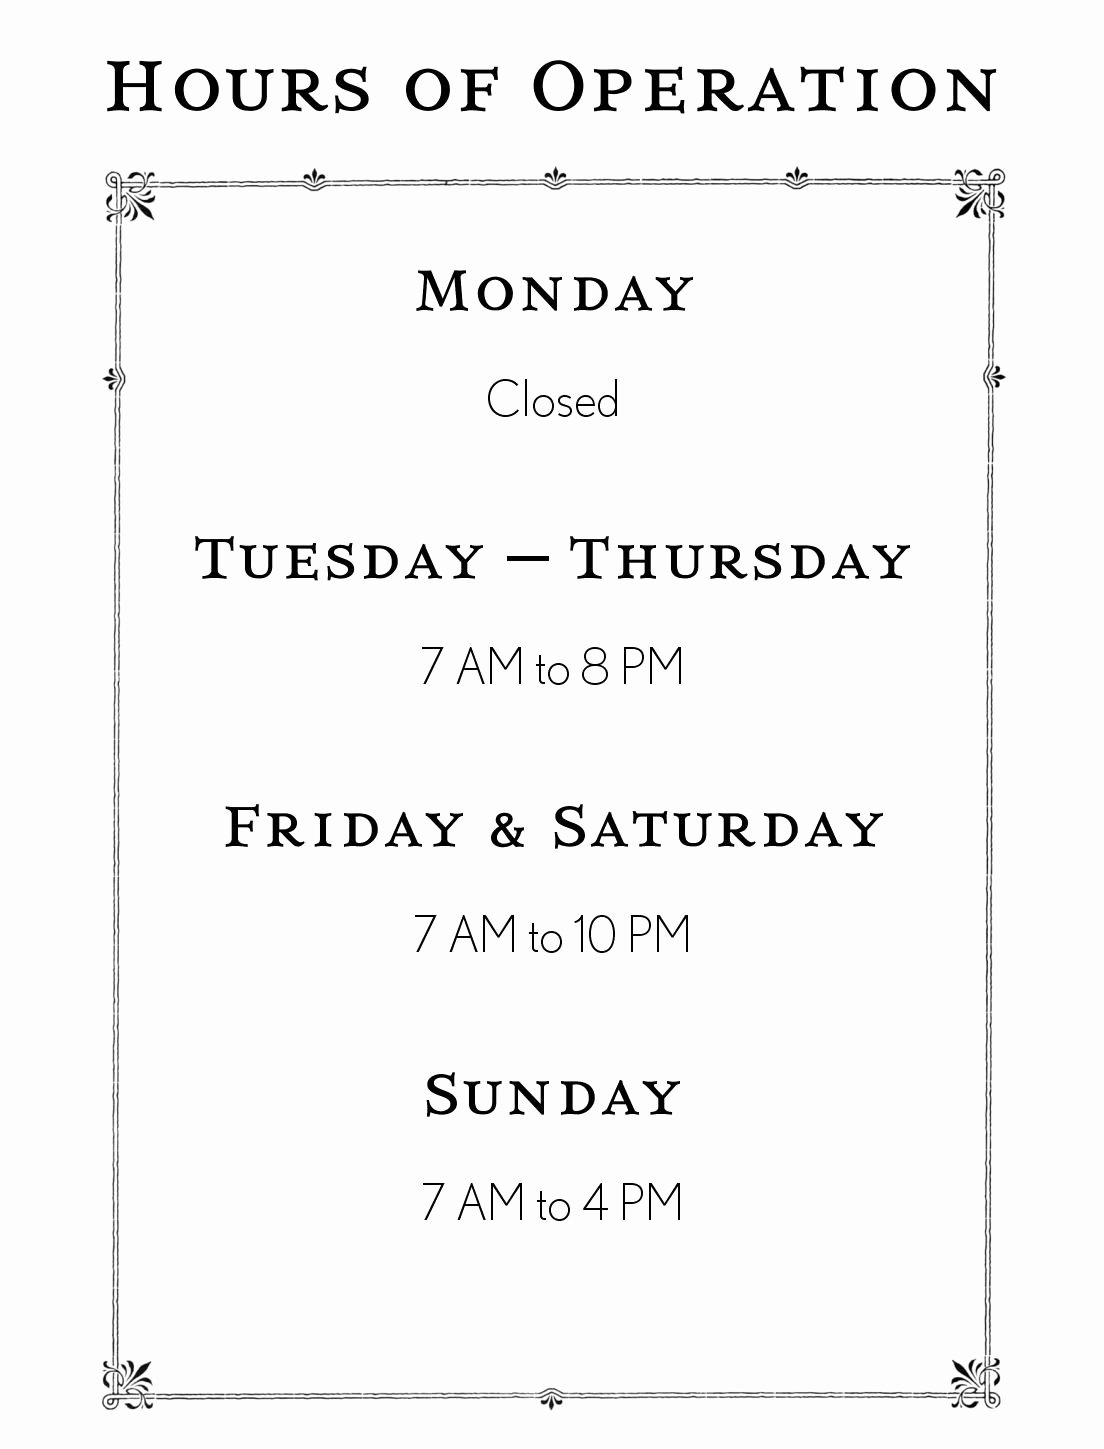 Store Hours Template Word Beautiful Hours Operation Template